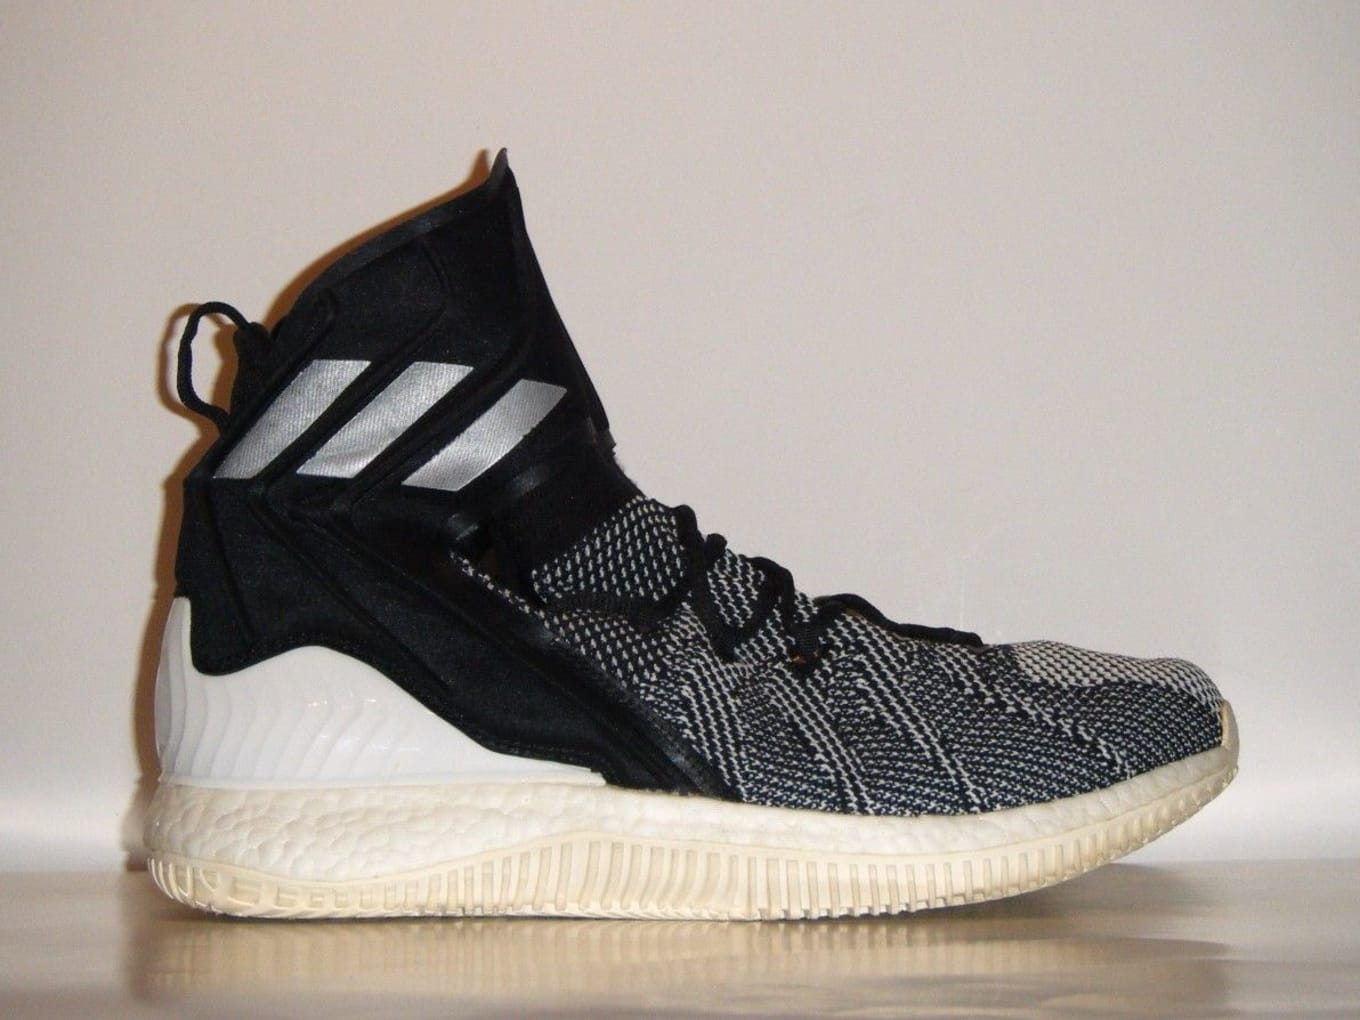 newest collection 90037 5b473 Adidas Ensam Boost Ultra Prototype Basketball Primeknit Samlare qxqZPUrFw